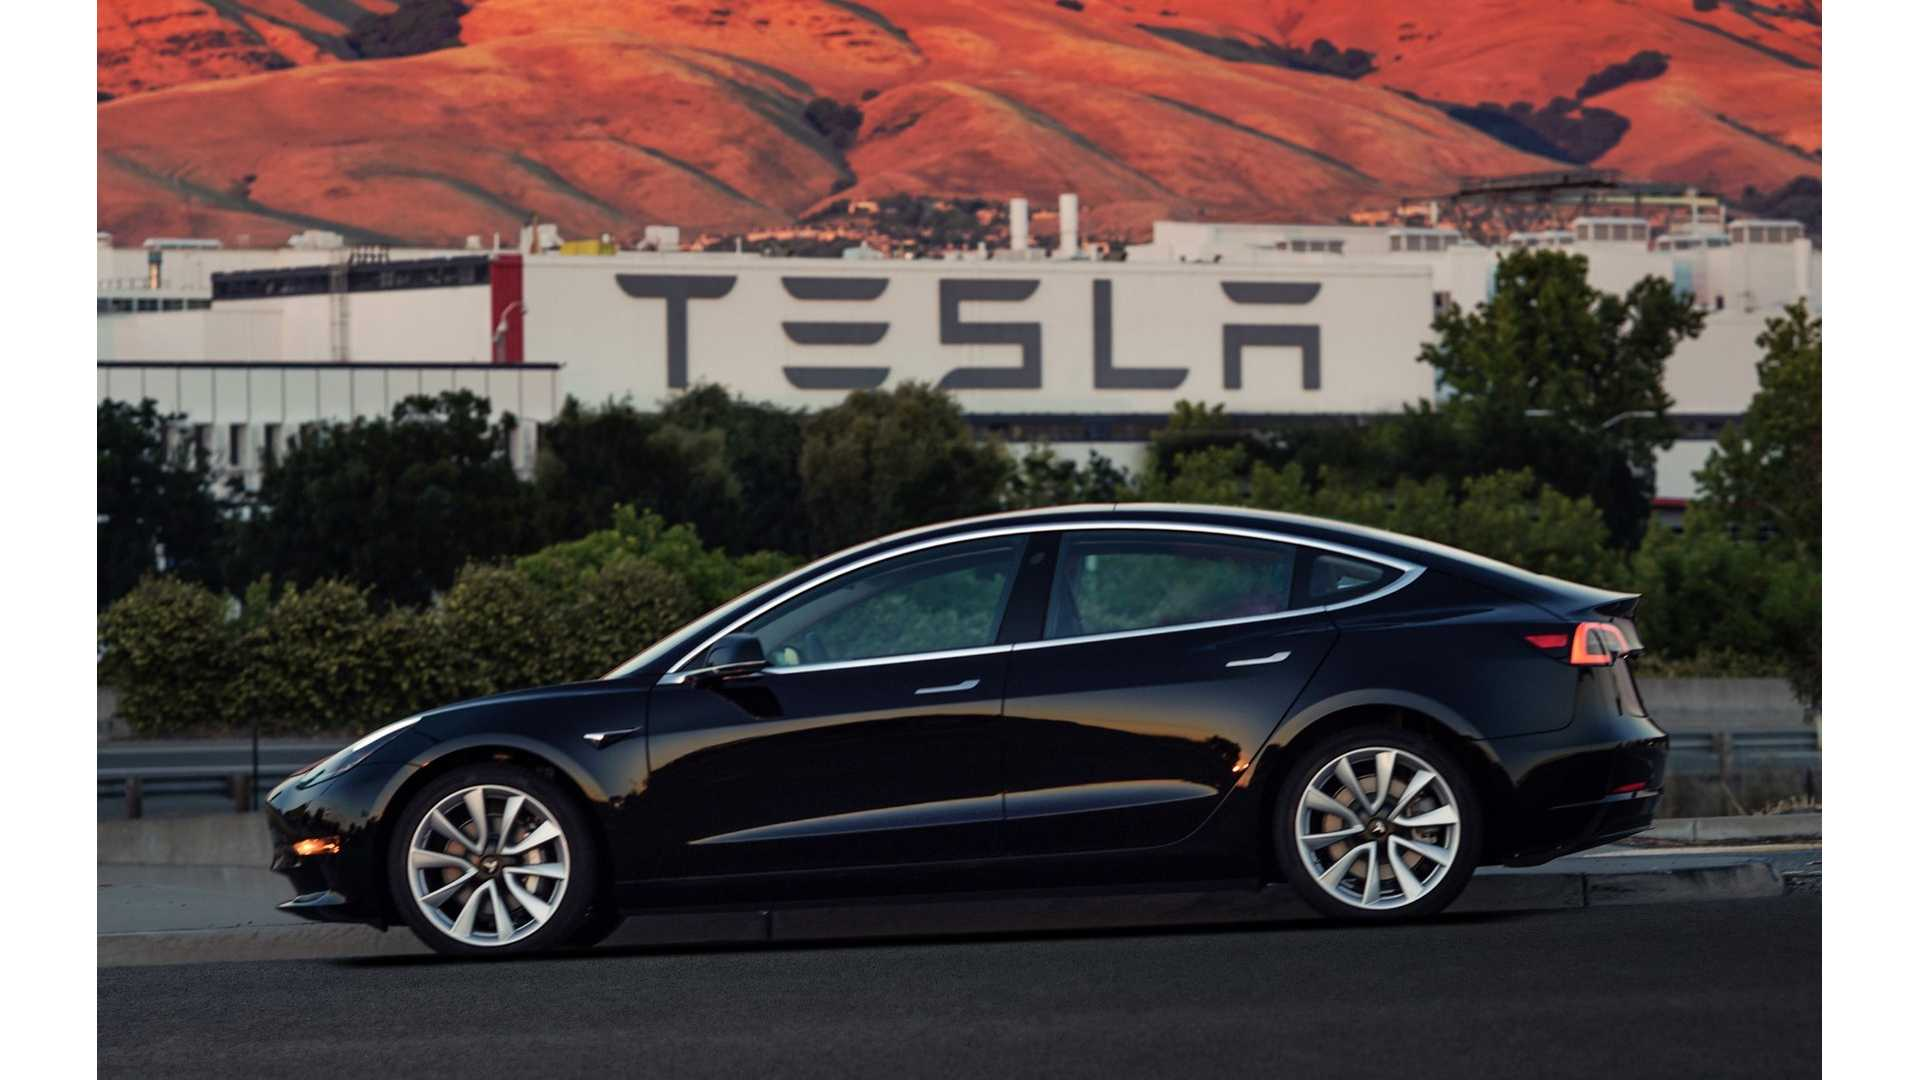 Comparison: All Versions Of Tesla Model 3 Available or Not